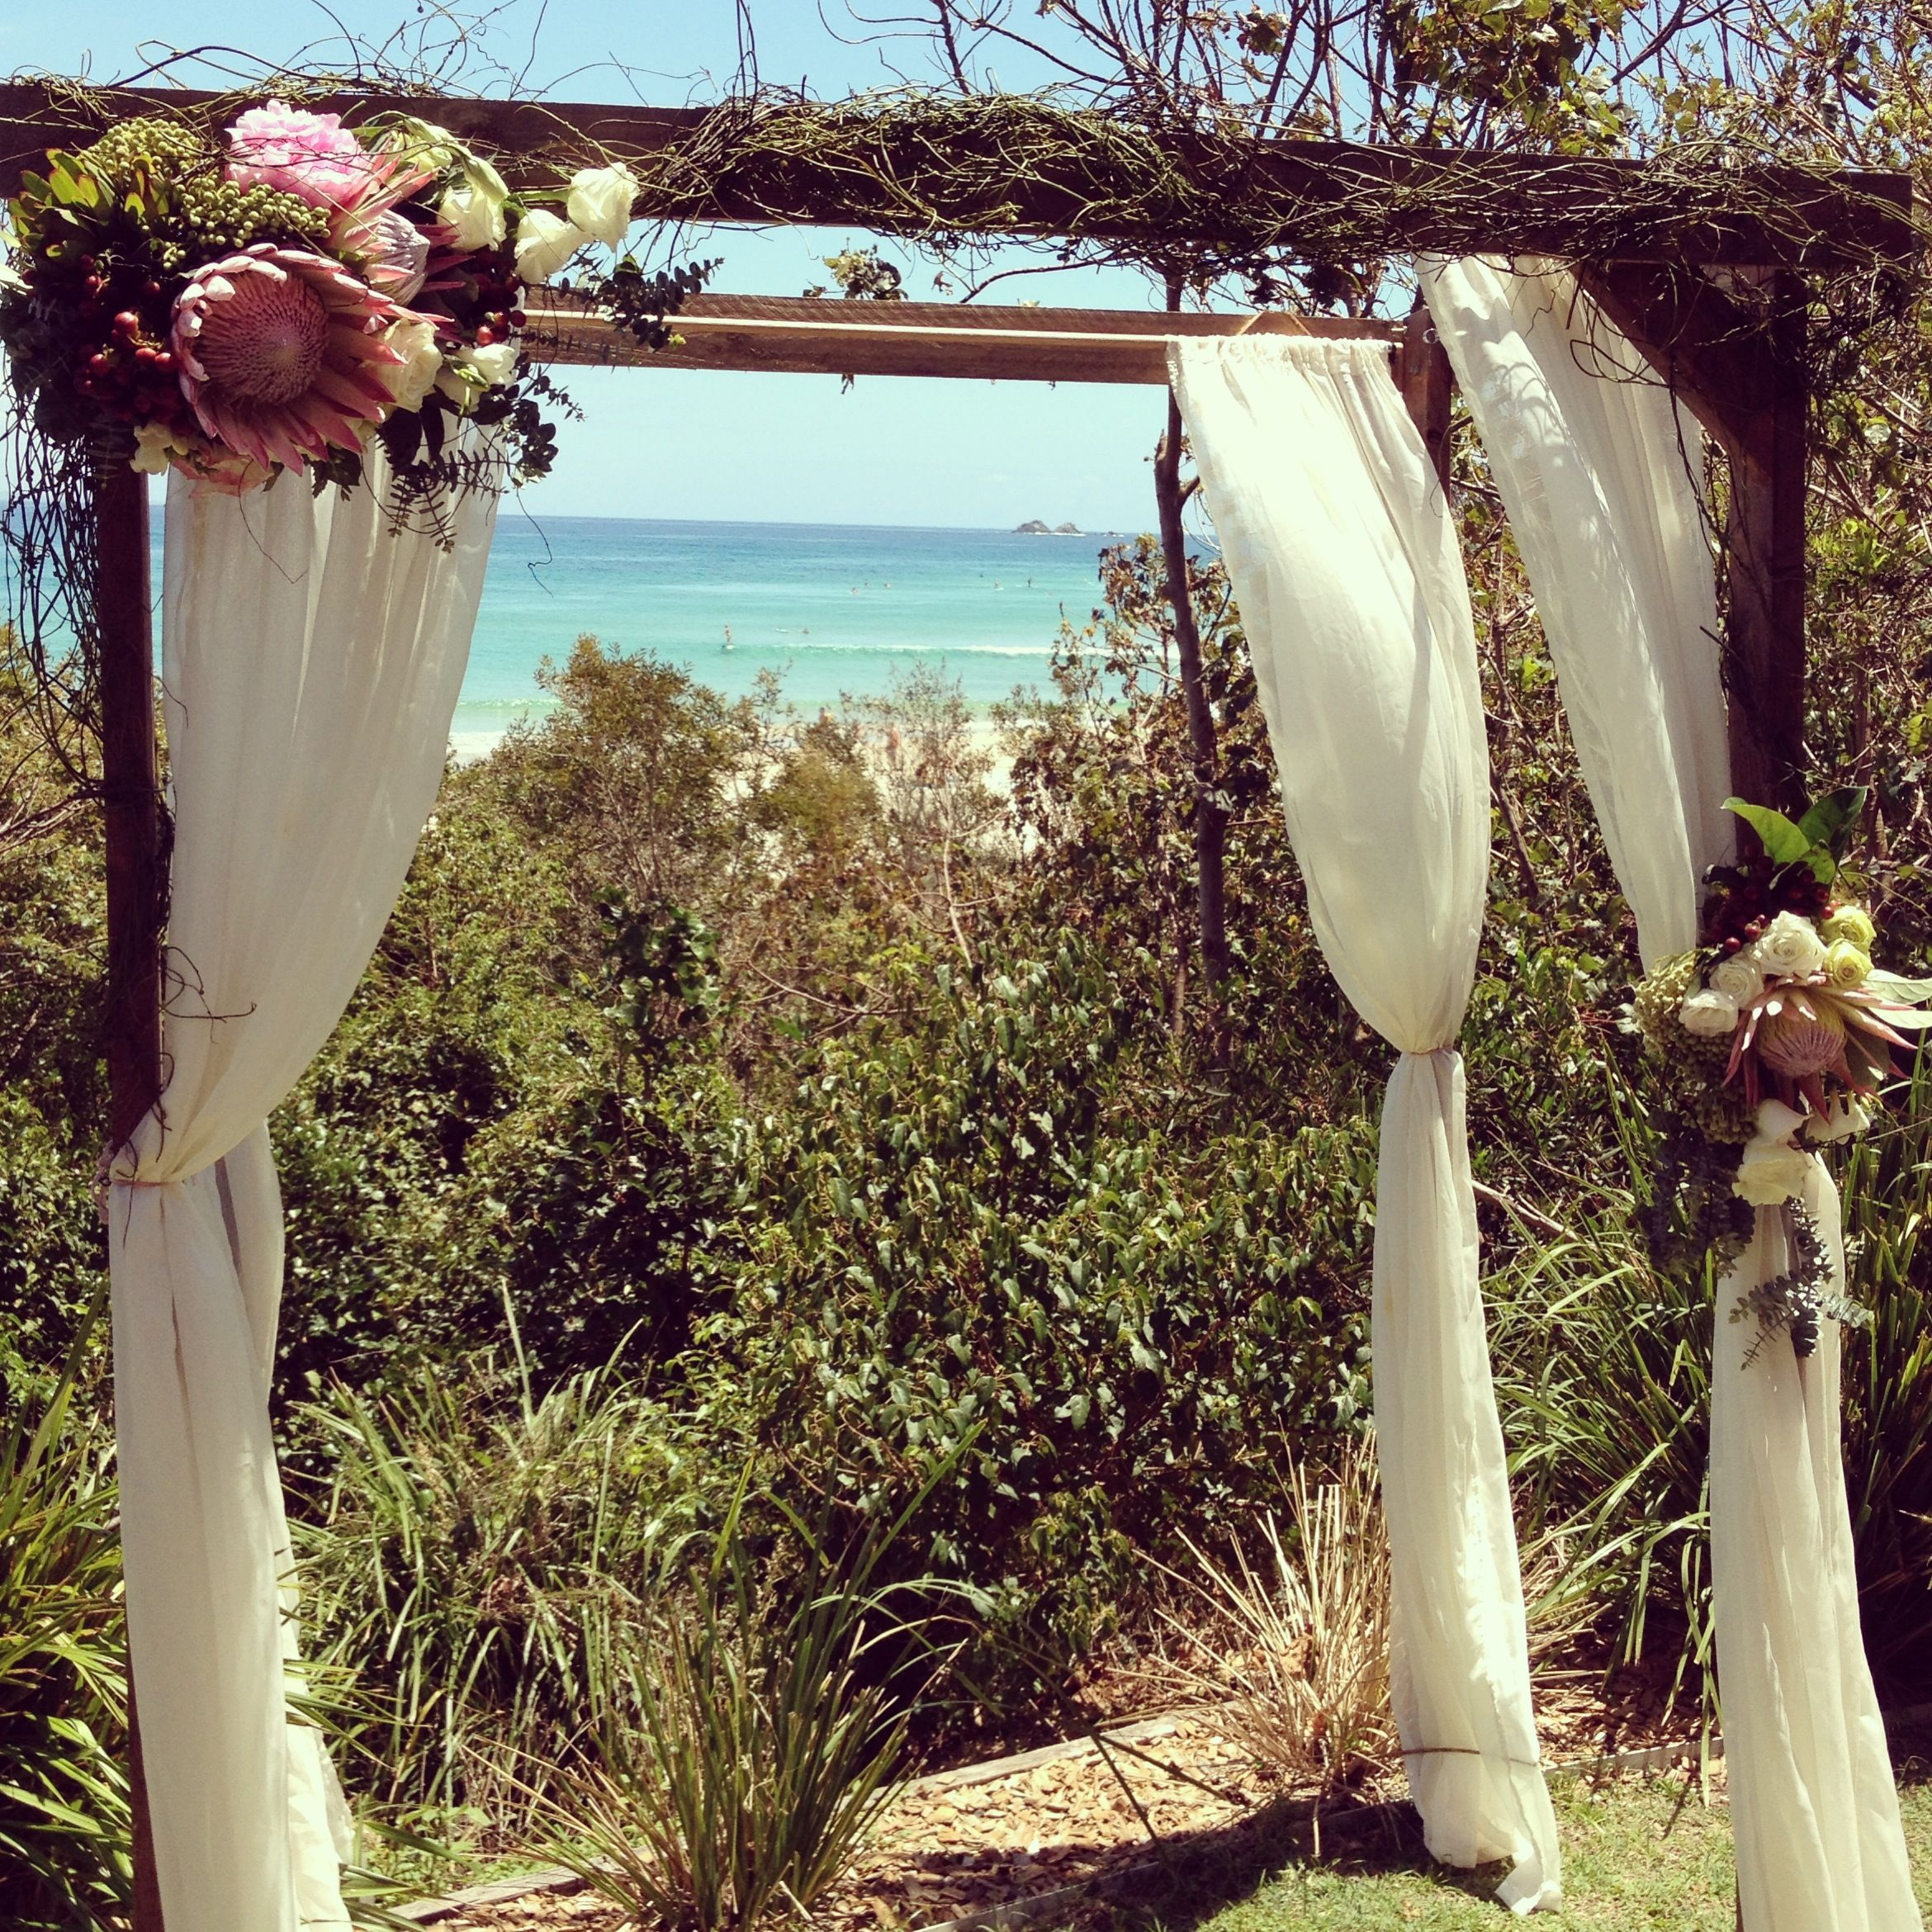 www.beautiflora.com byron bay wedding floral arbour. Using softer flowers for Renee rather than natives